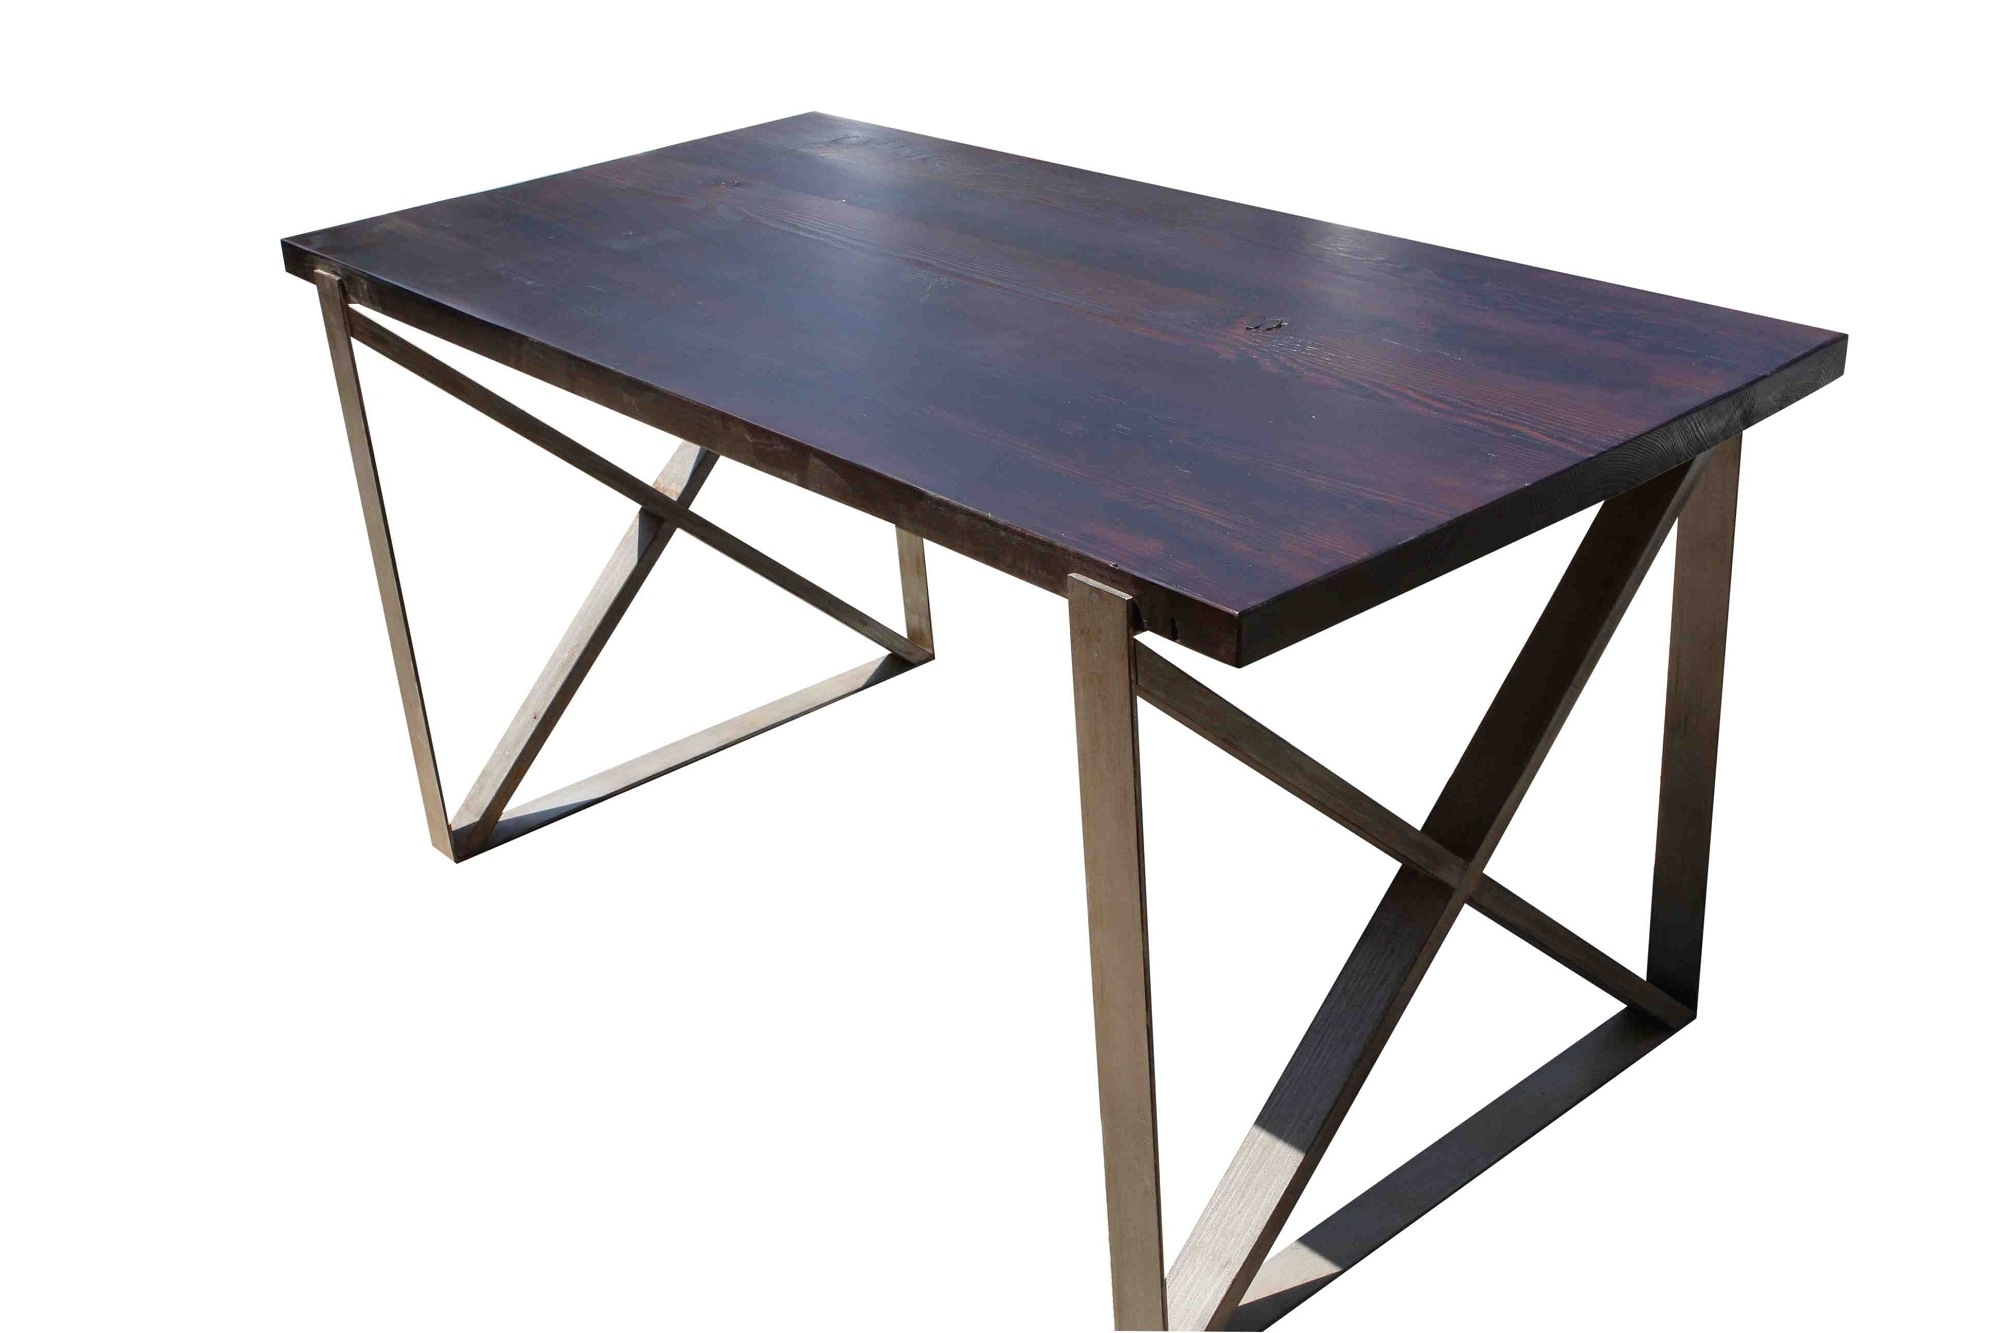 2000x1333px 8 Good Reclaimed Wood Dining Table Chicago Picture in Furniture